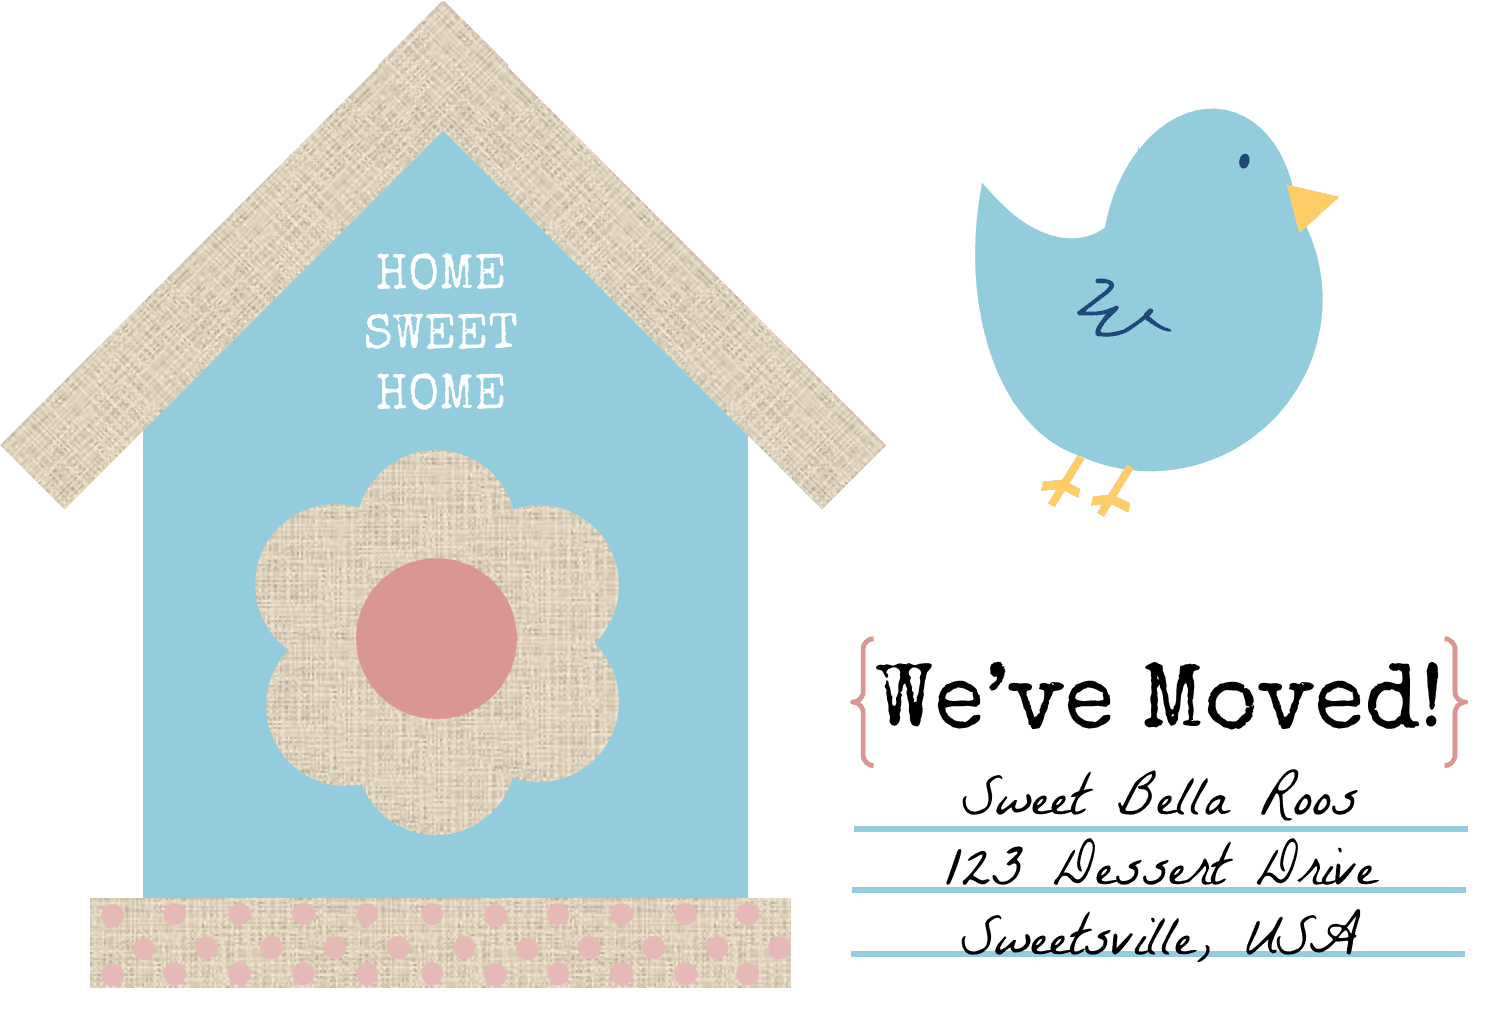 A change of address card with a bird and birdhouse